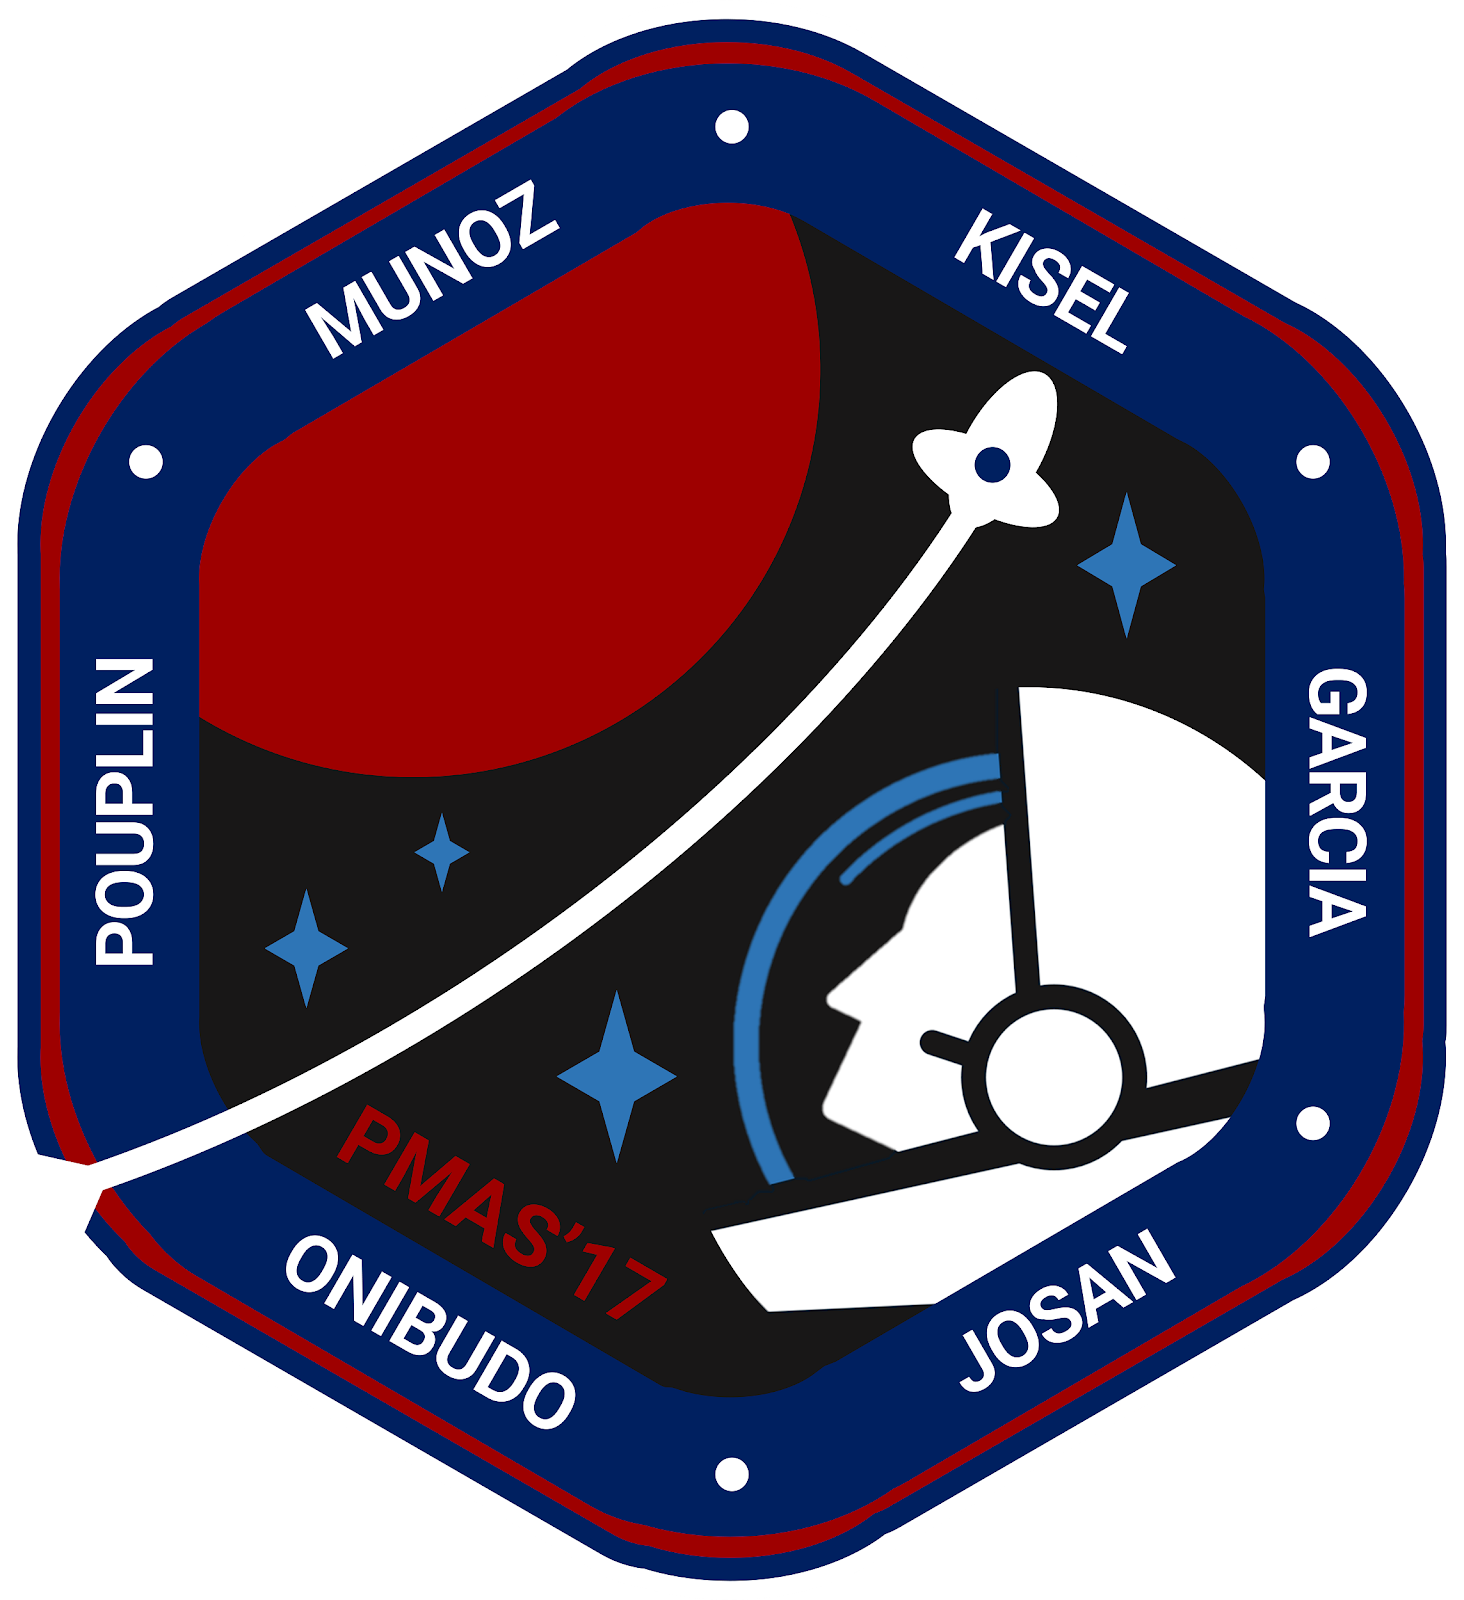 Mission_patch_core - Copy.png